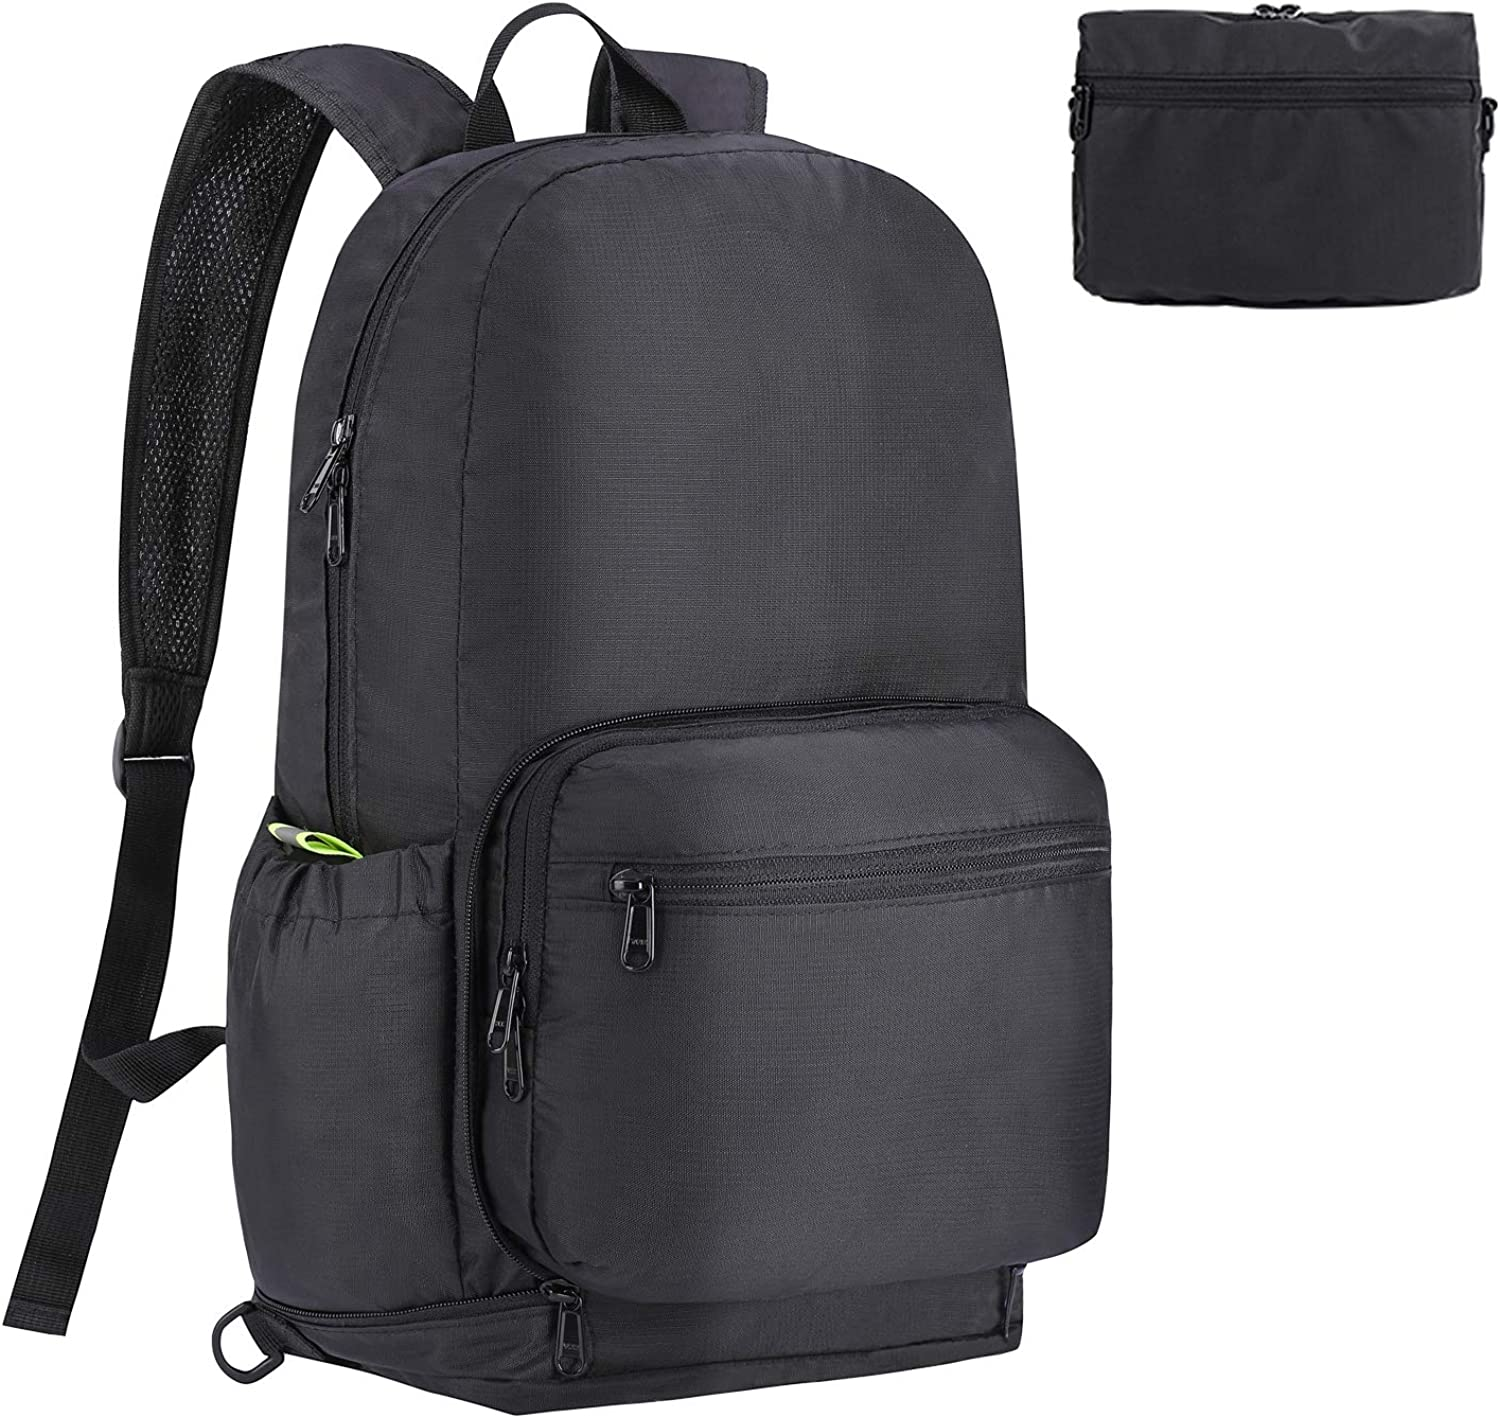 Vproof Packable Backpack, Multifunctional Hiking Backpack Fanny Pack